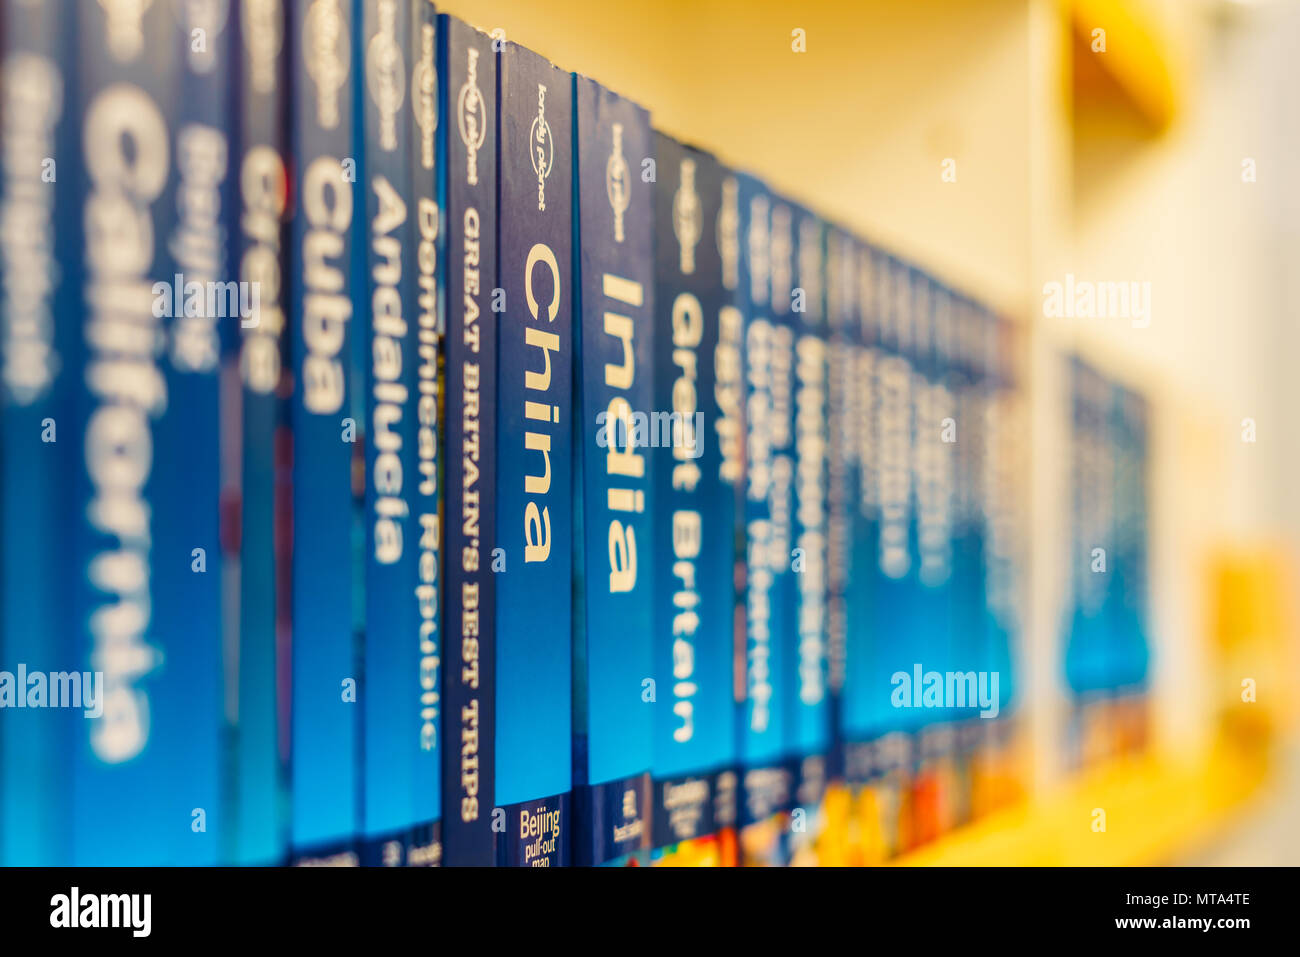 BUCHAREST, ROMANIA - MAY 27, 2018: Cities Of The World And Country Travel Books For Sale On Bookstore Shelf - Stock Image